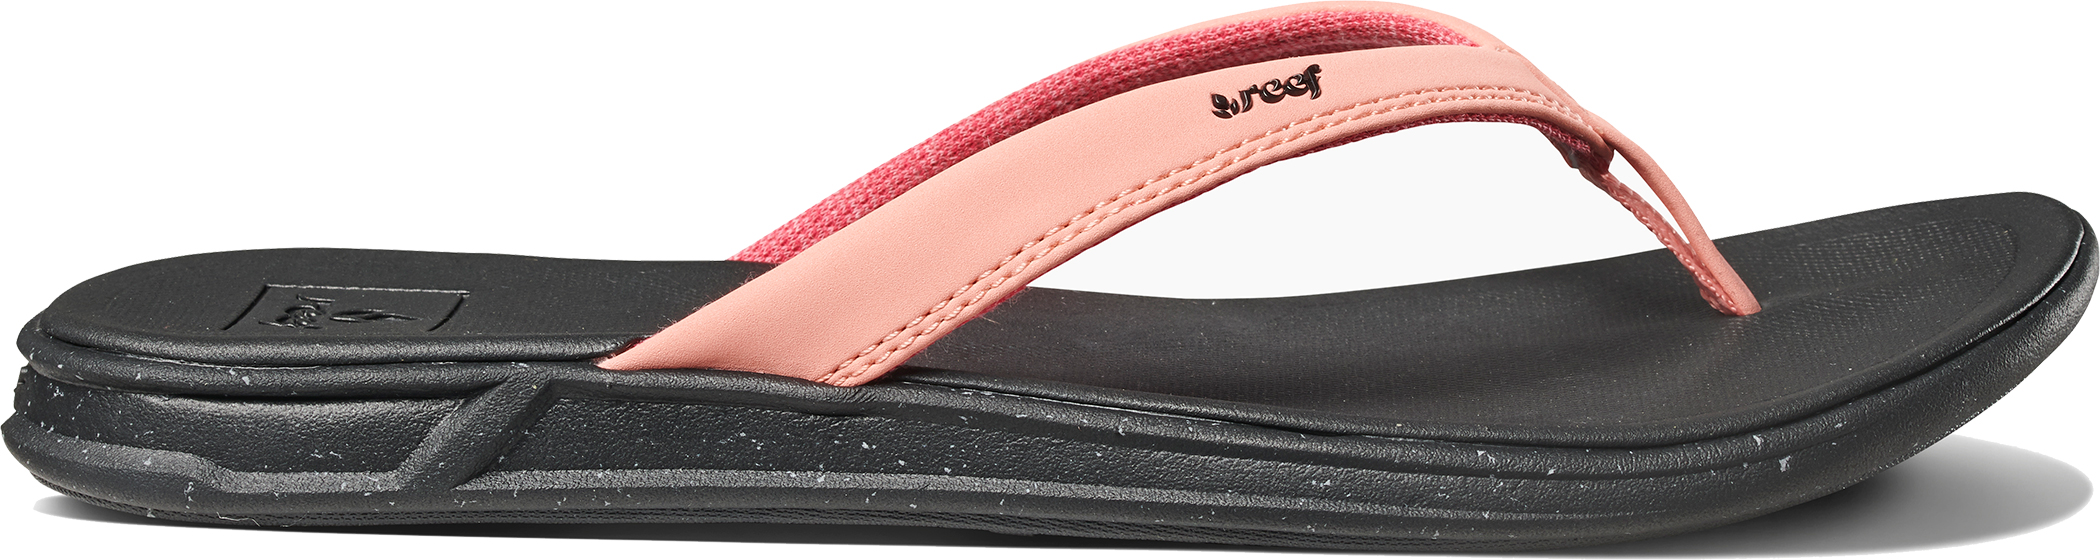 0bcd8b1c9e7e Reef Women s Rover Catch Pop Flip Flops Uk9 Bright Coral. About this  product. Picture 1 of 5  Picture 2 of 5  Picture 3 of 5 ...